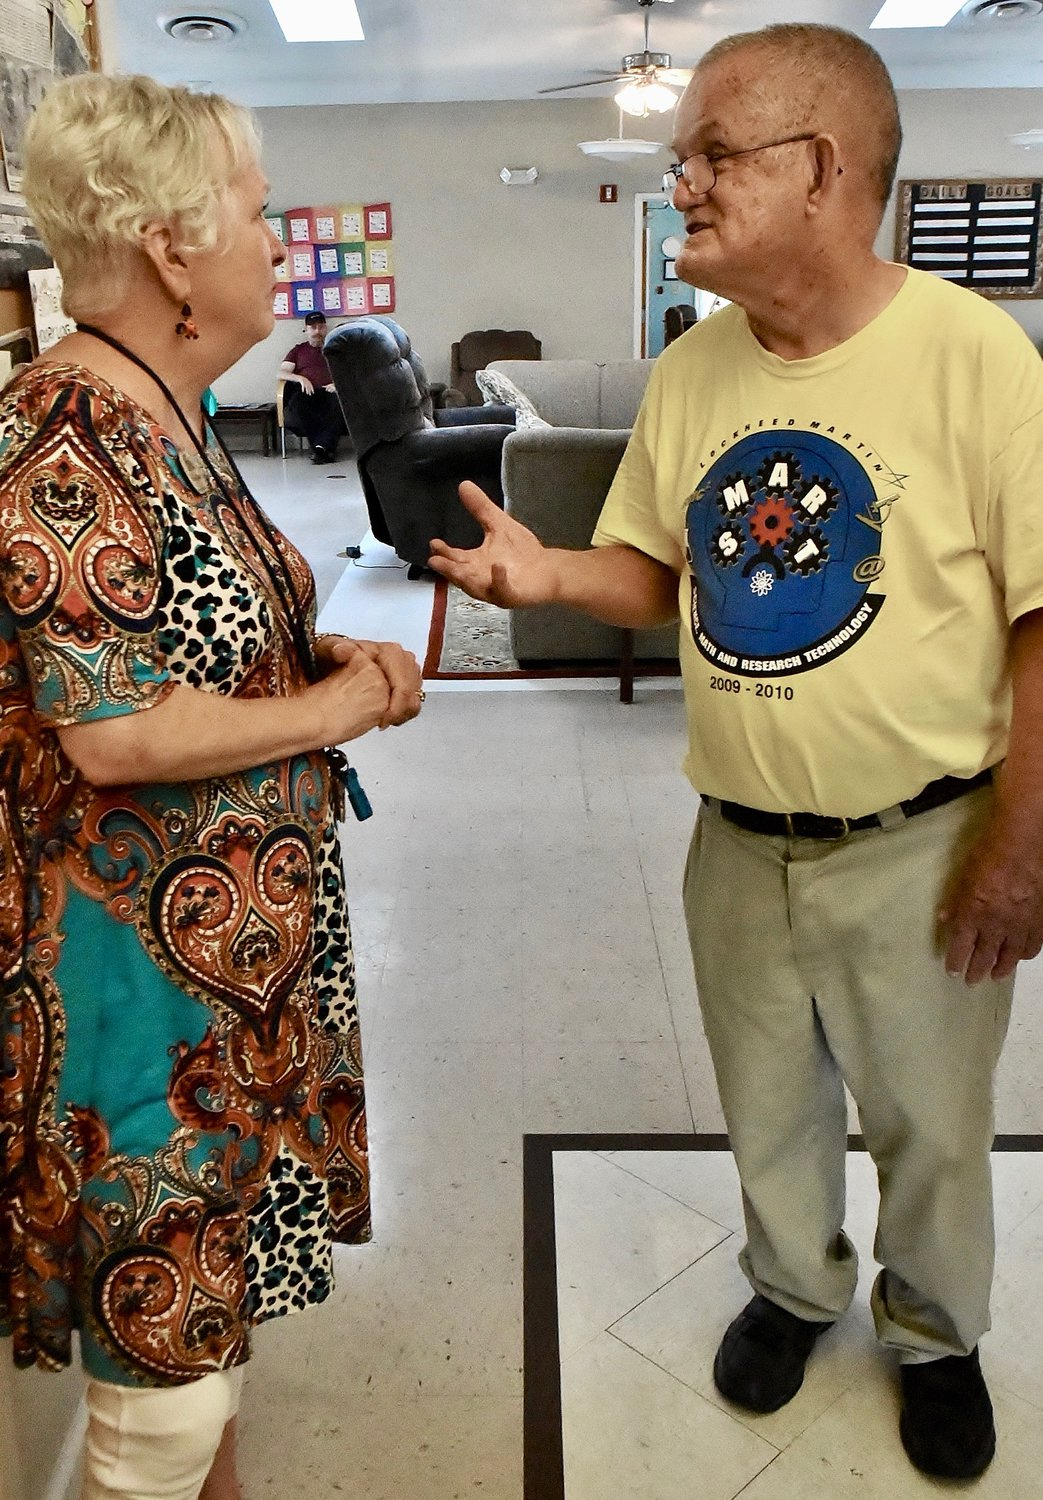 Hickory Log Vocational School resident Elmer Smith, right, speaks with the facility's Interim Executive Director Patty Eagar.